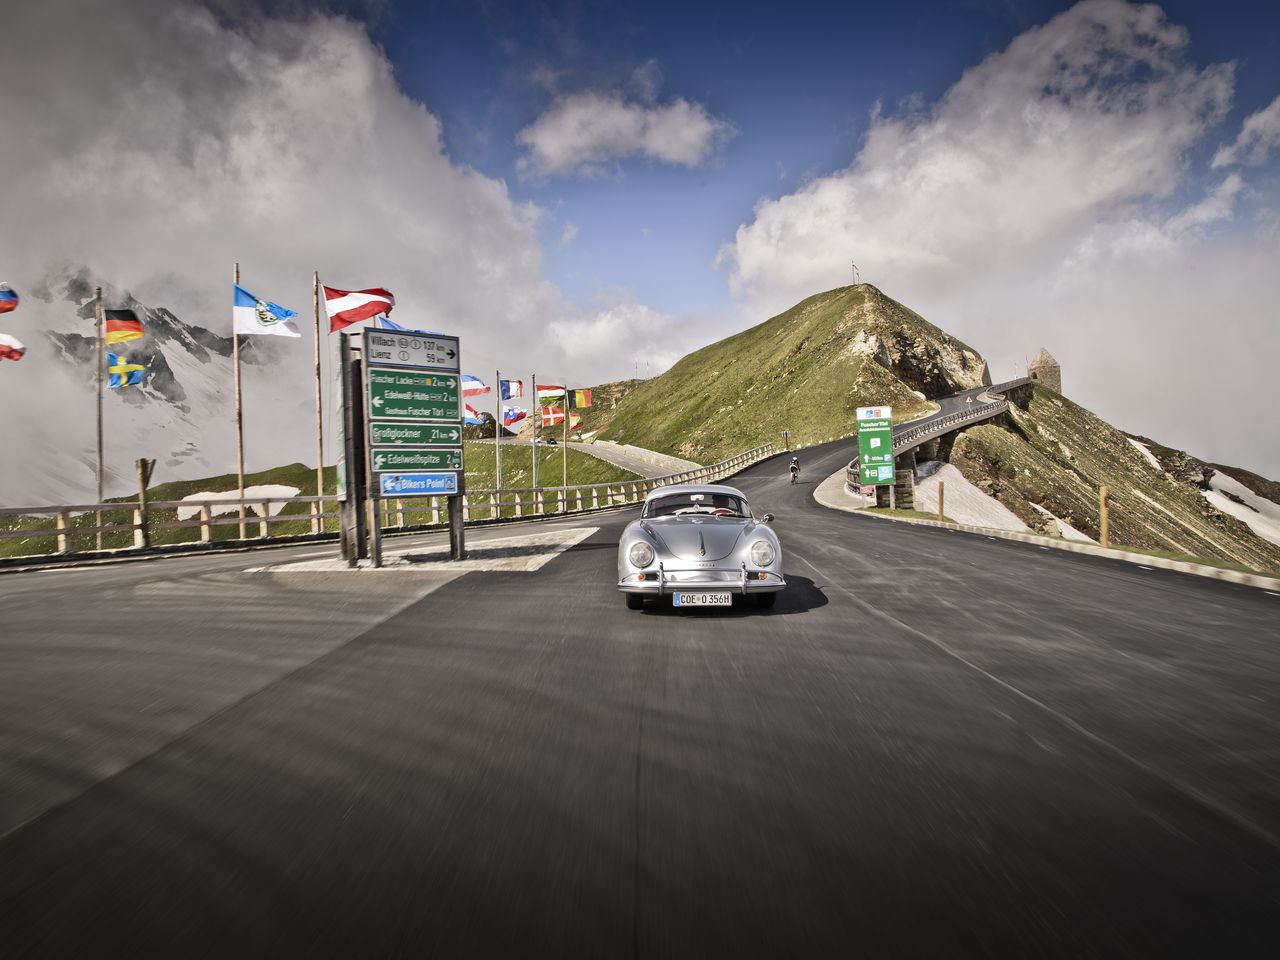 ... The following models, among others, were on hand on the Grossglockner: The 356 A Speedster with Hardtop